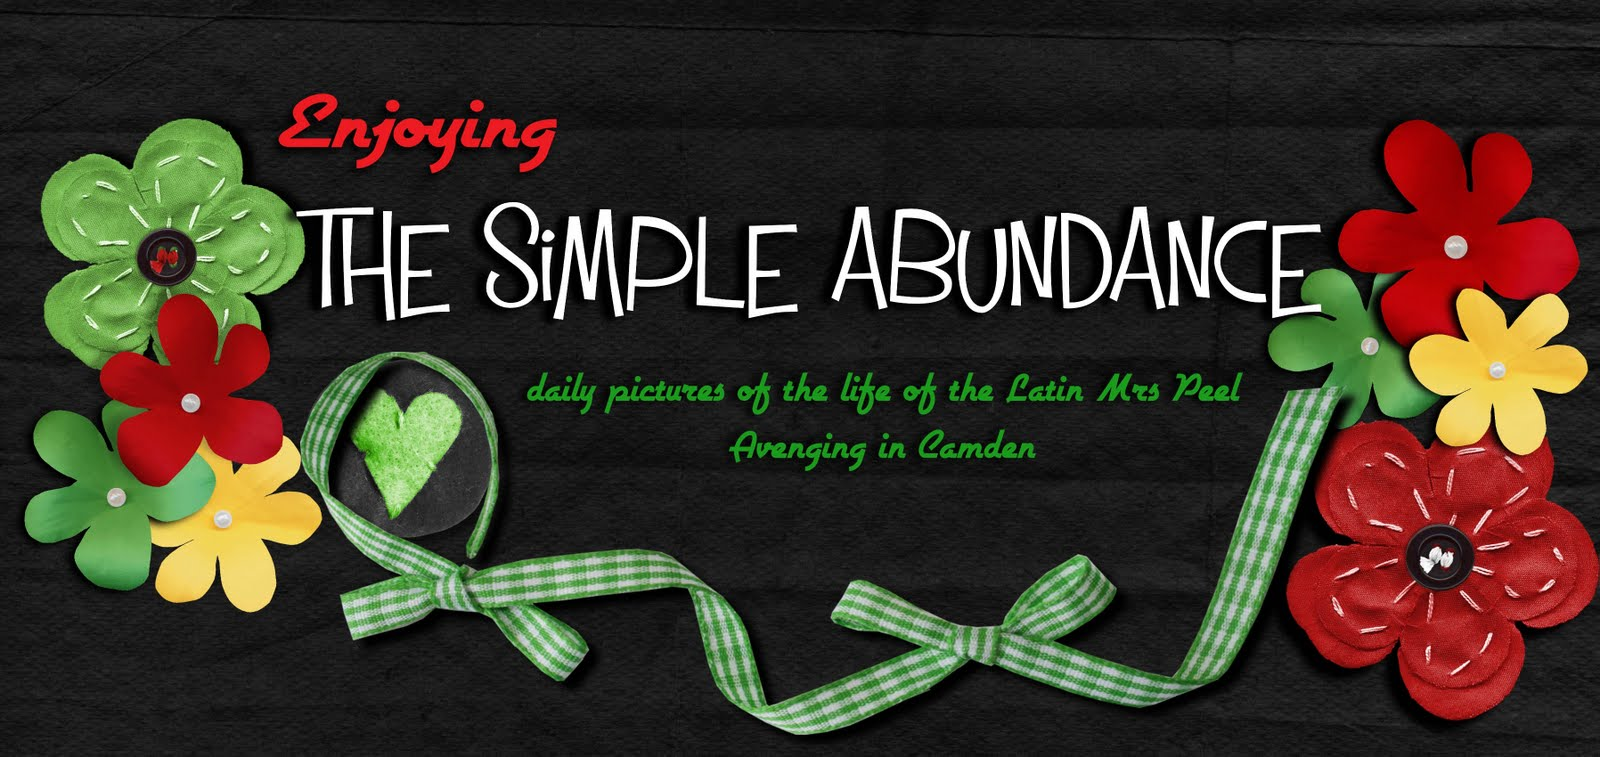 Enjoying The Simple Abundance